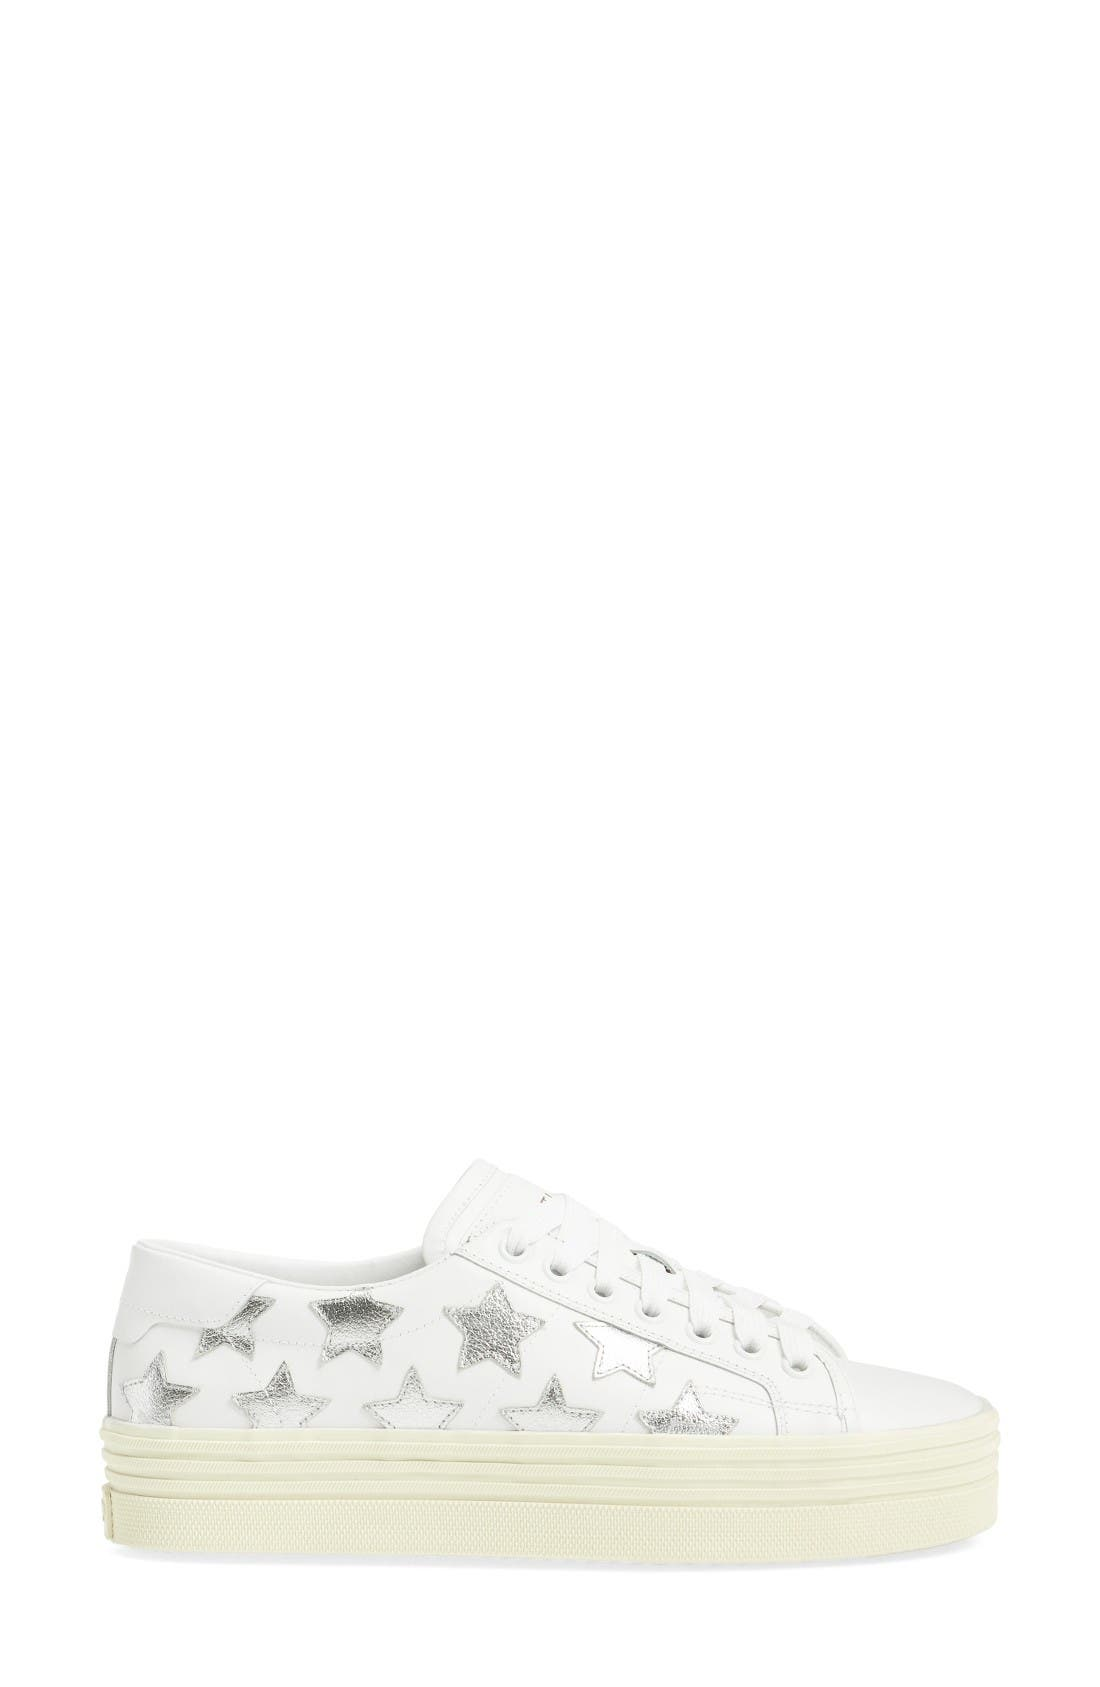 Double Court Classic Sneaker,                             Alternate thumbnail 4, color,                             Ivory